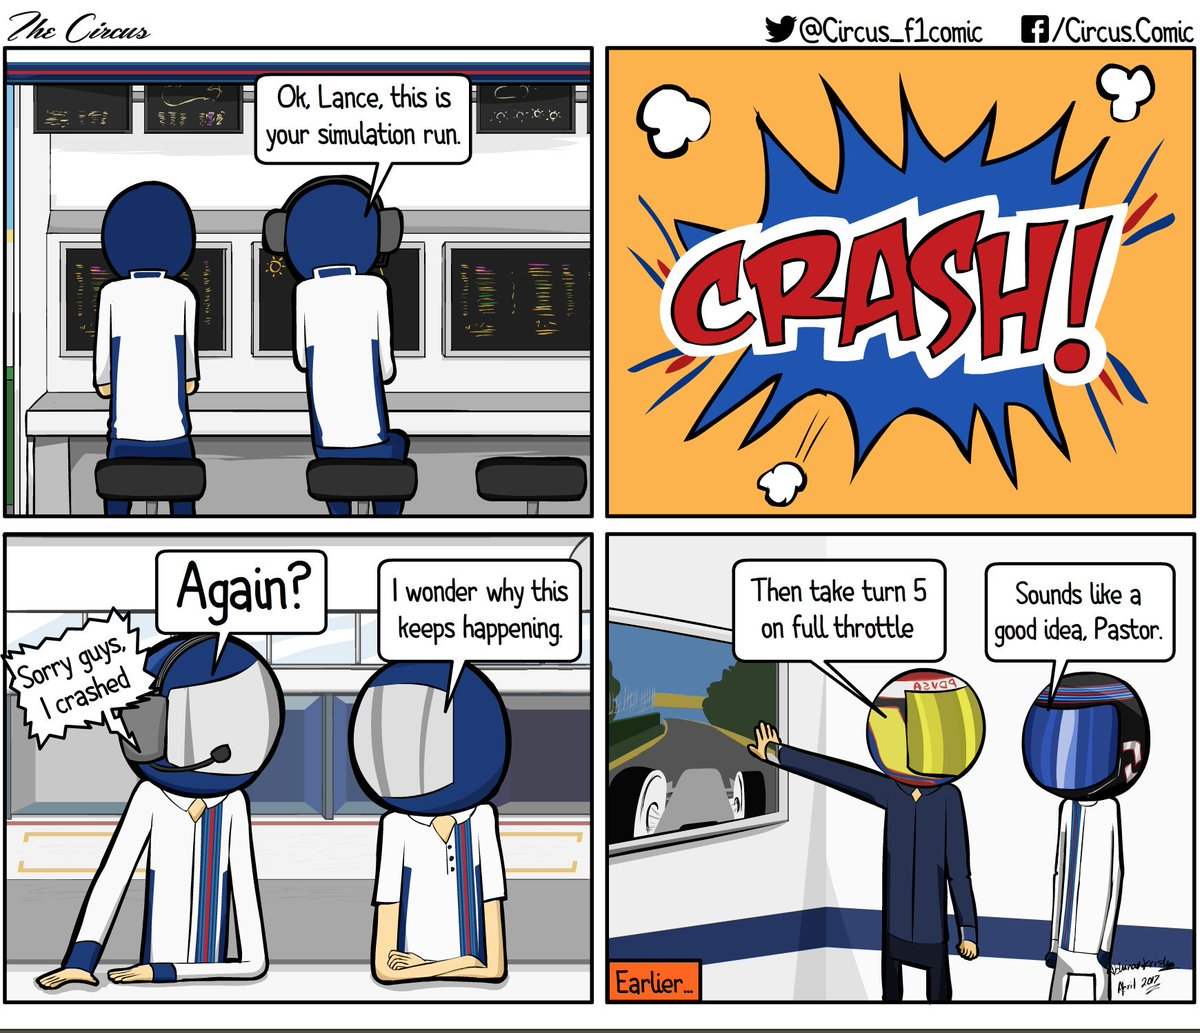 The Stroll Situation #MonacoGP #F1 via @Circus_F1comic #Williams #F1 #Crash #PS4<br>http://pic.twitter.com/zGMDuy343q